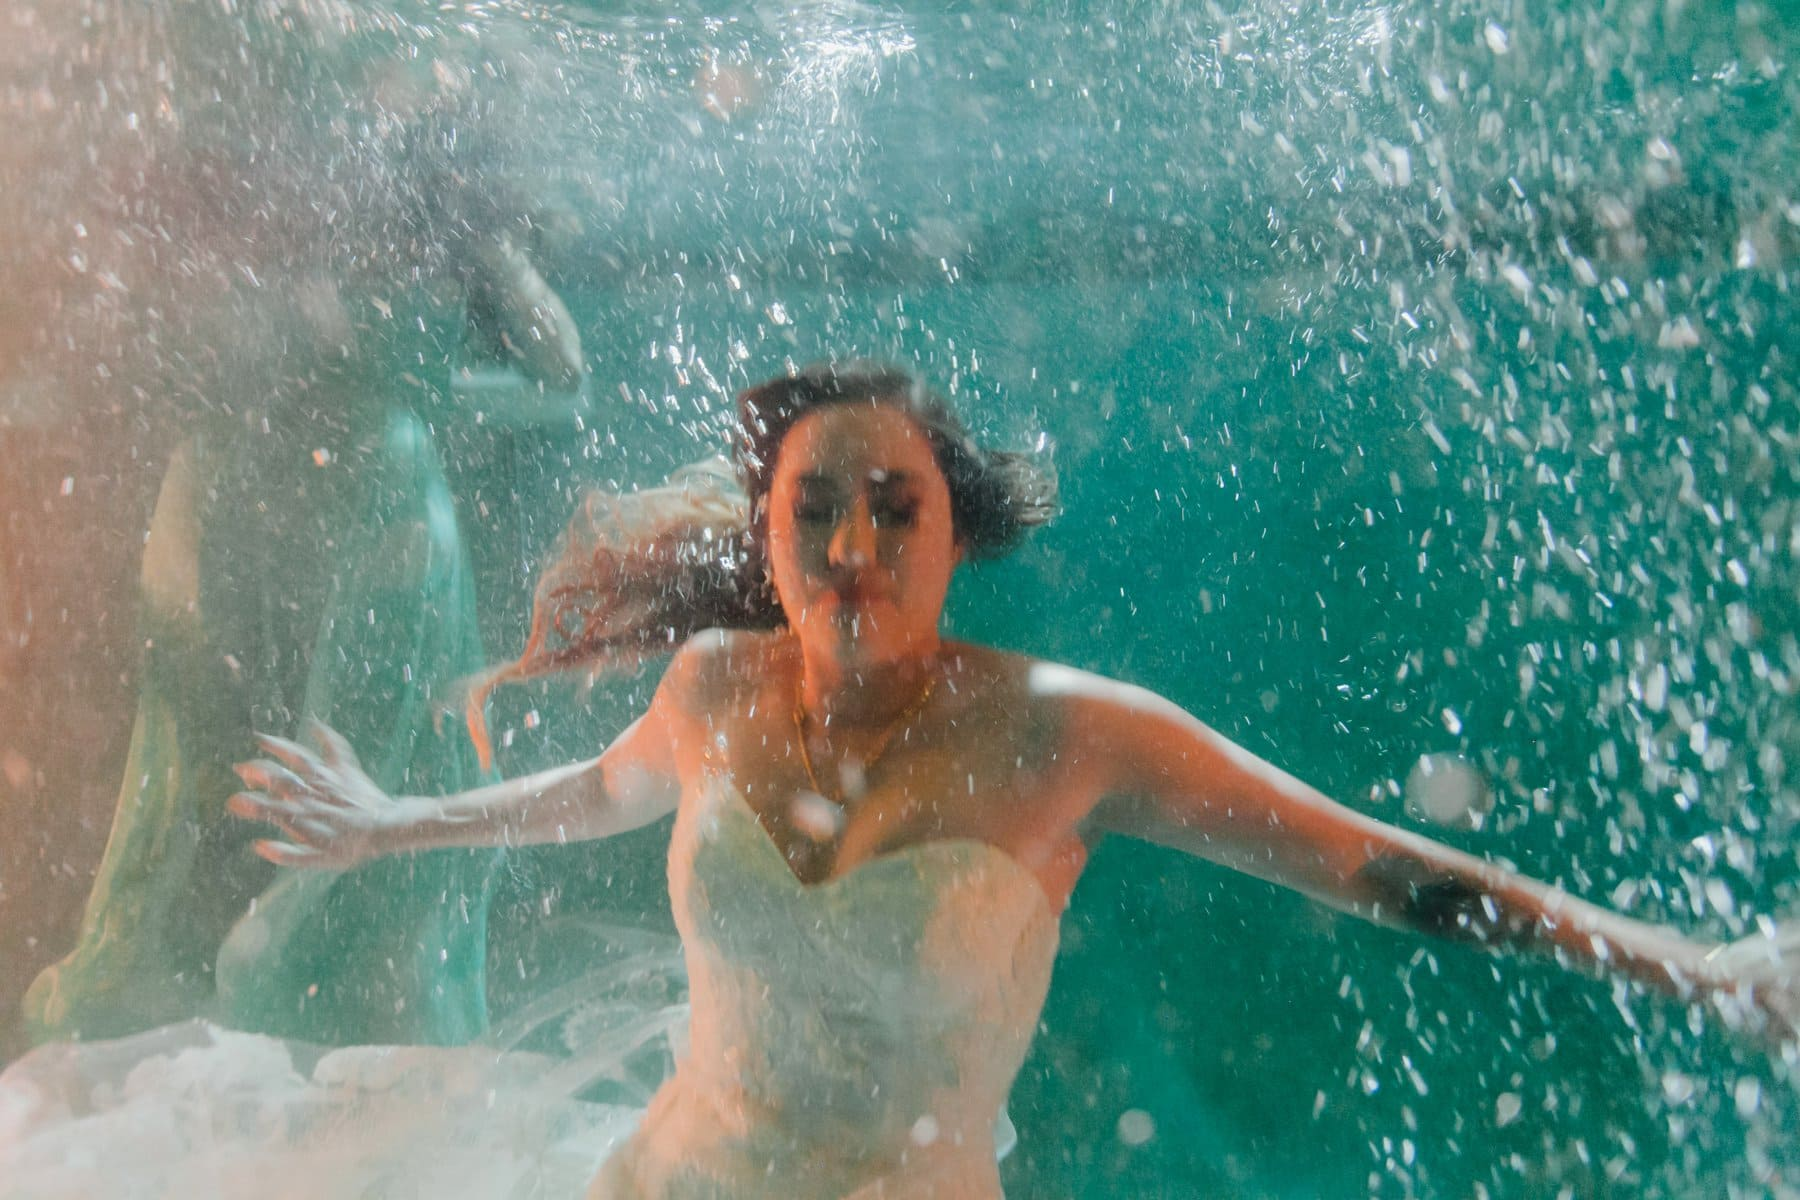 bride jumps into pool at wedding underwater photo